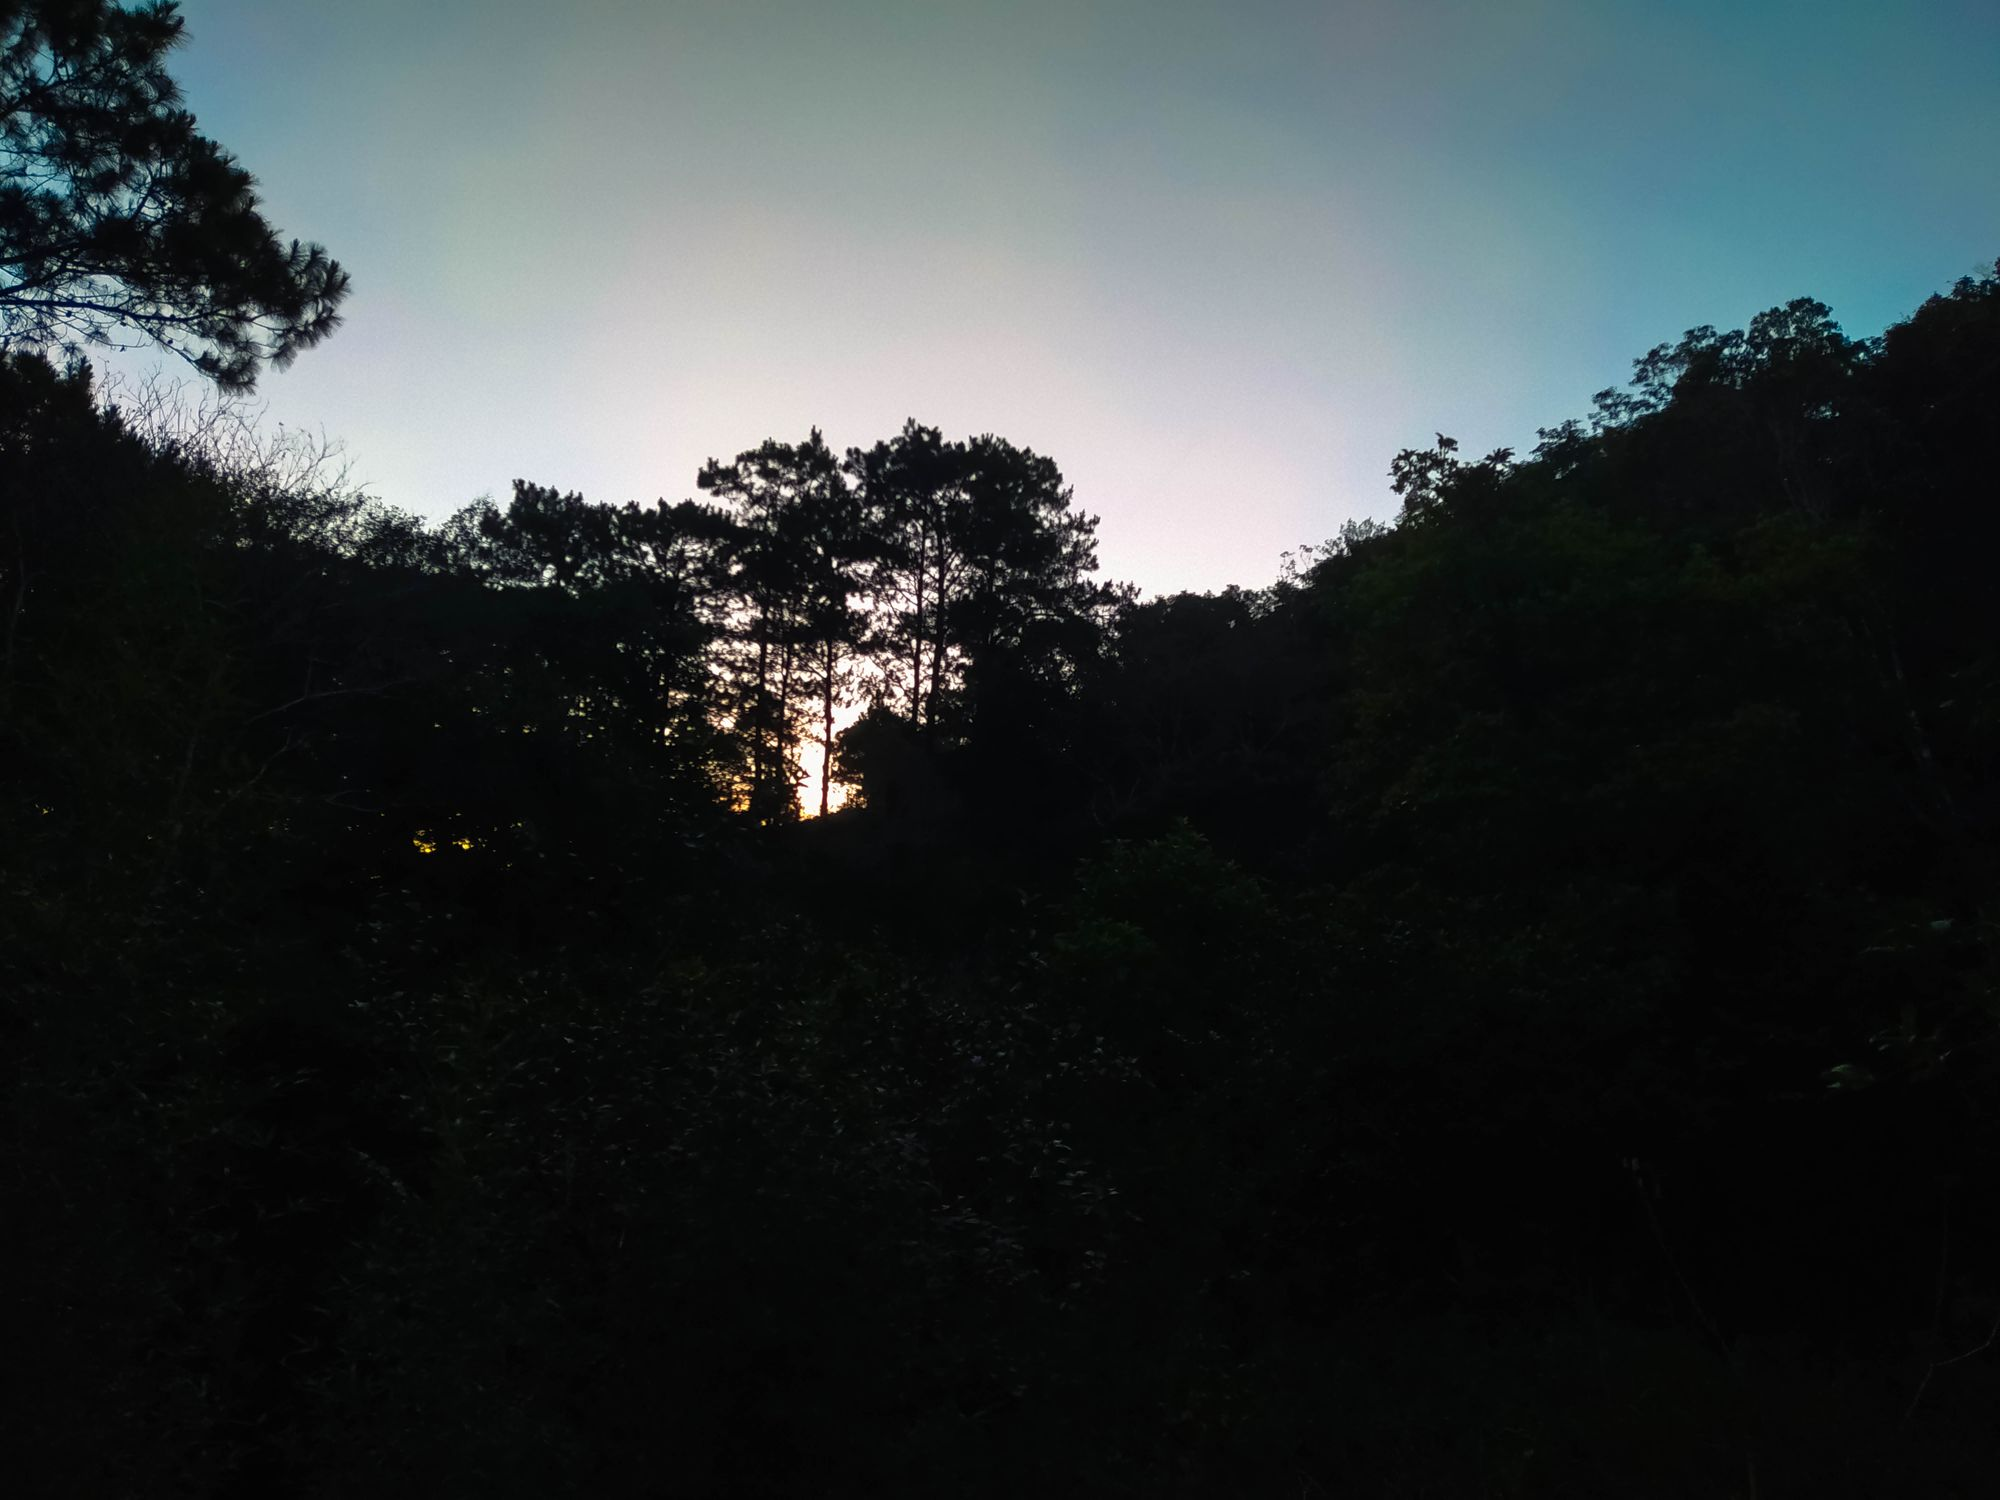 A photo of the dawn sky above a dark forest at Mount Kalugong